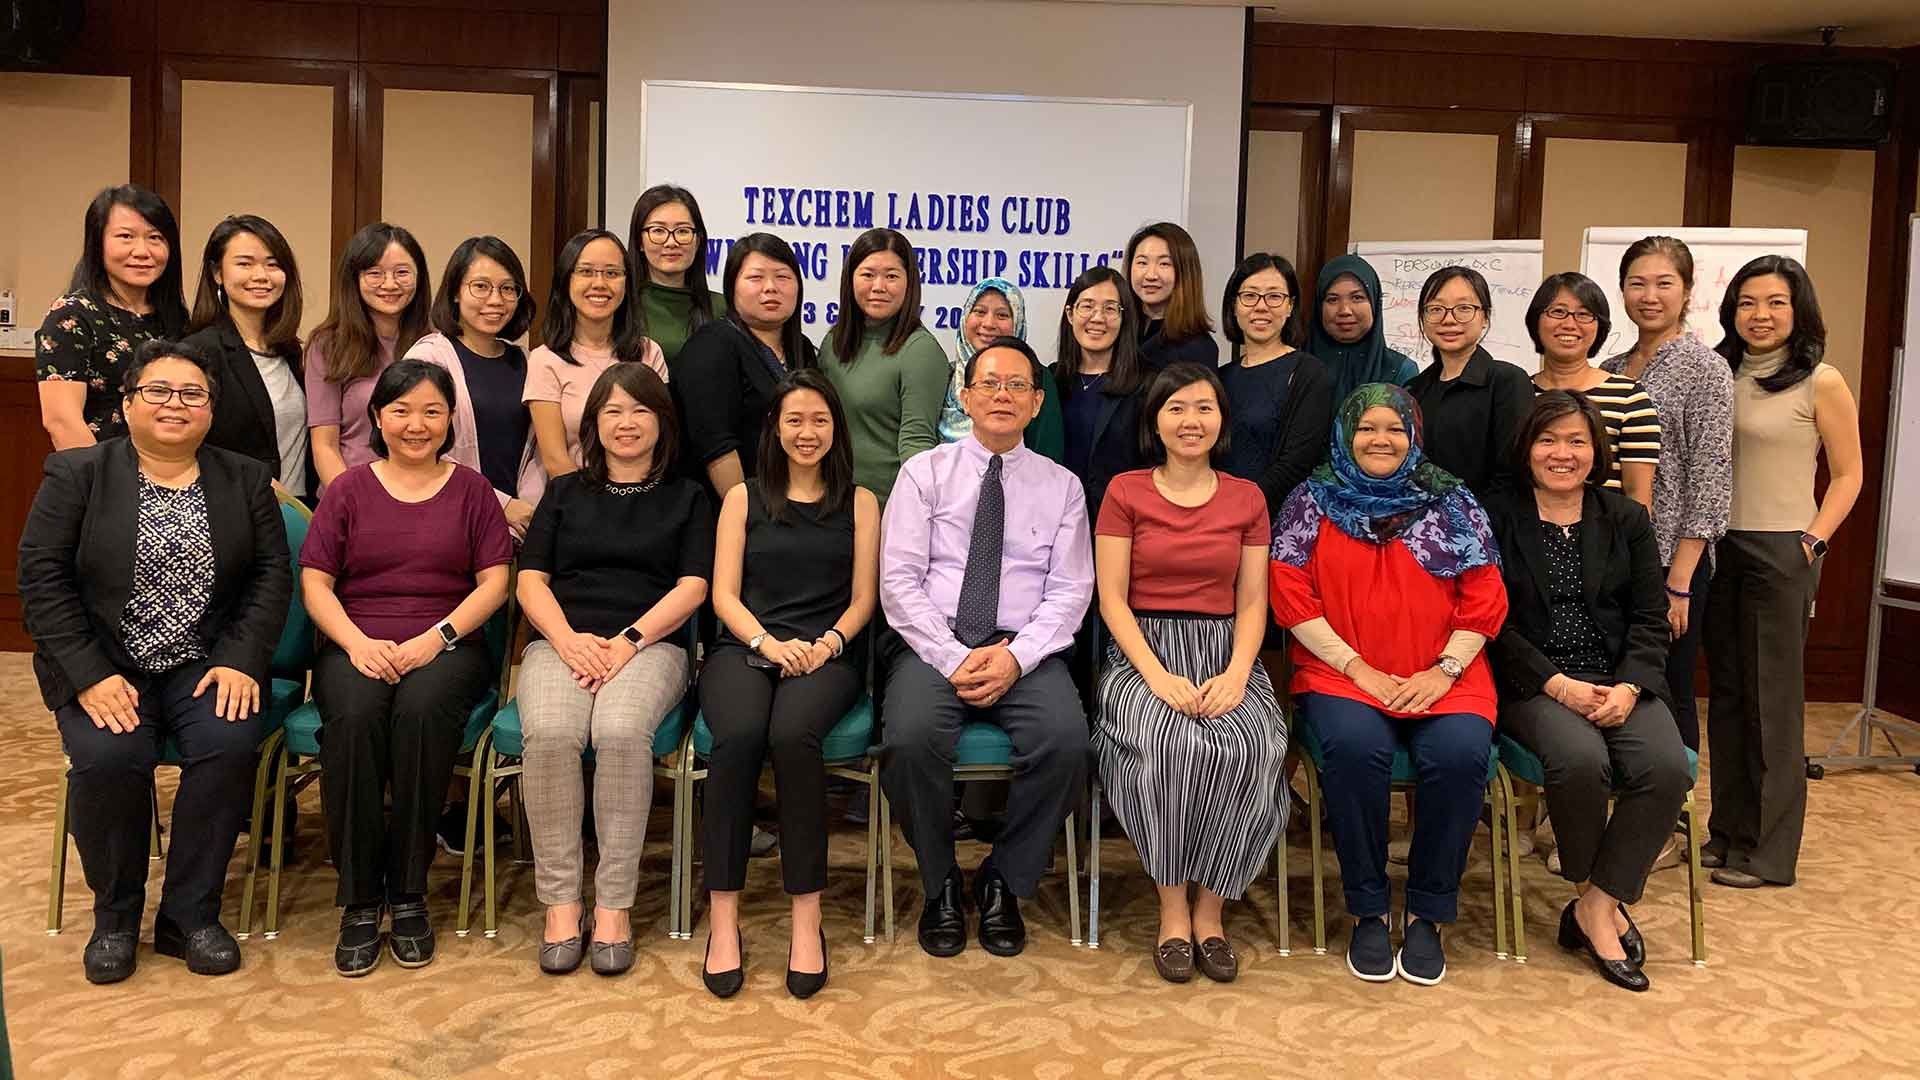 Texchem Ladies' Club – Winning Leadership Skills